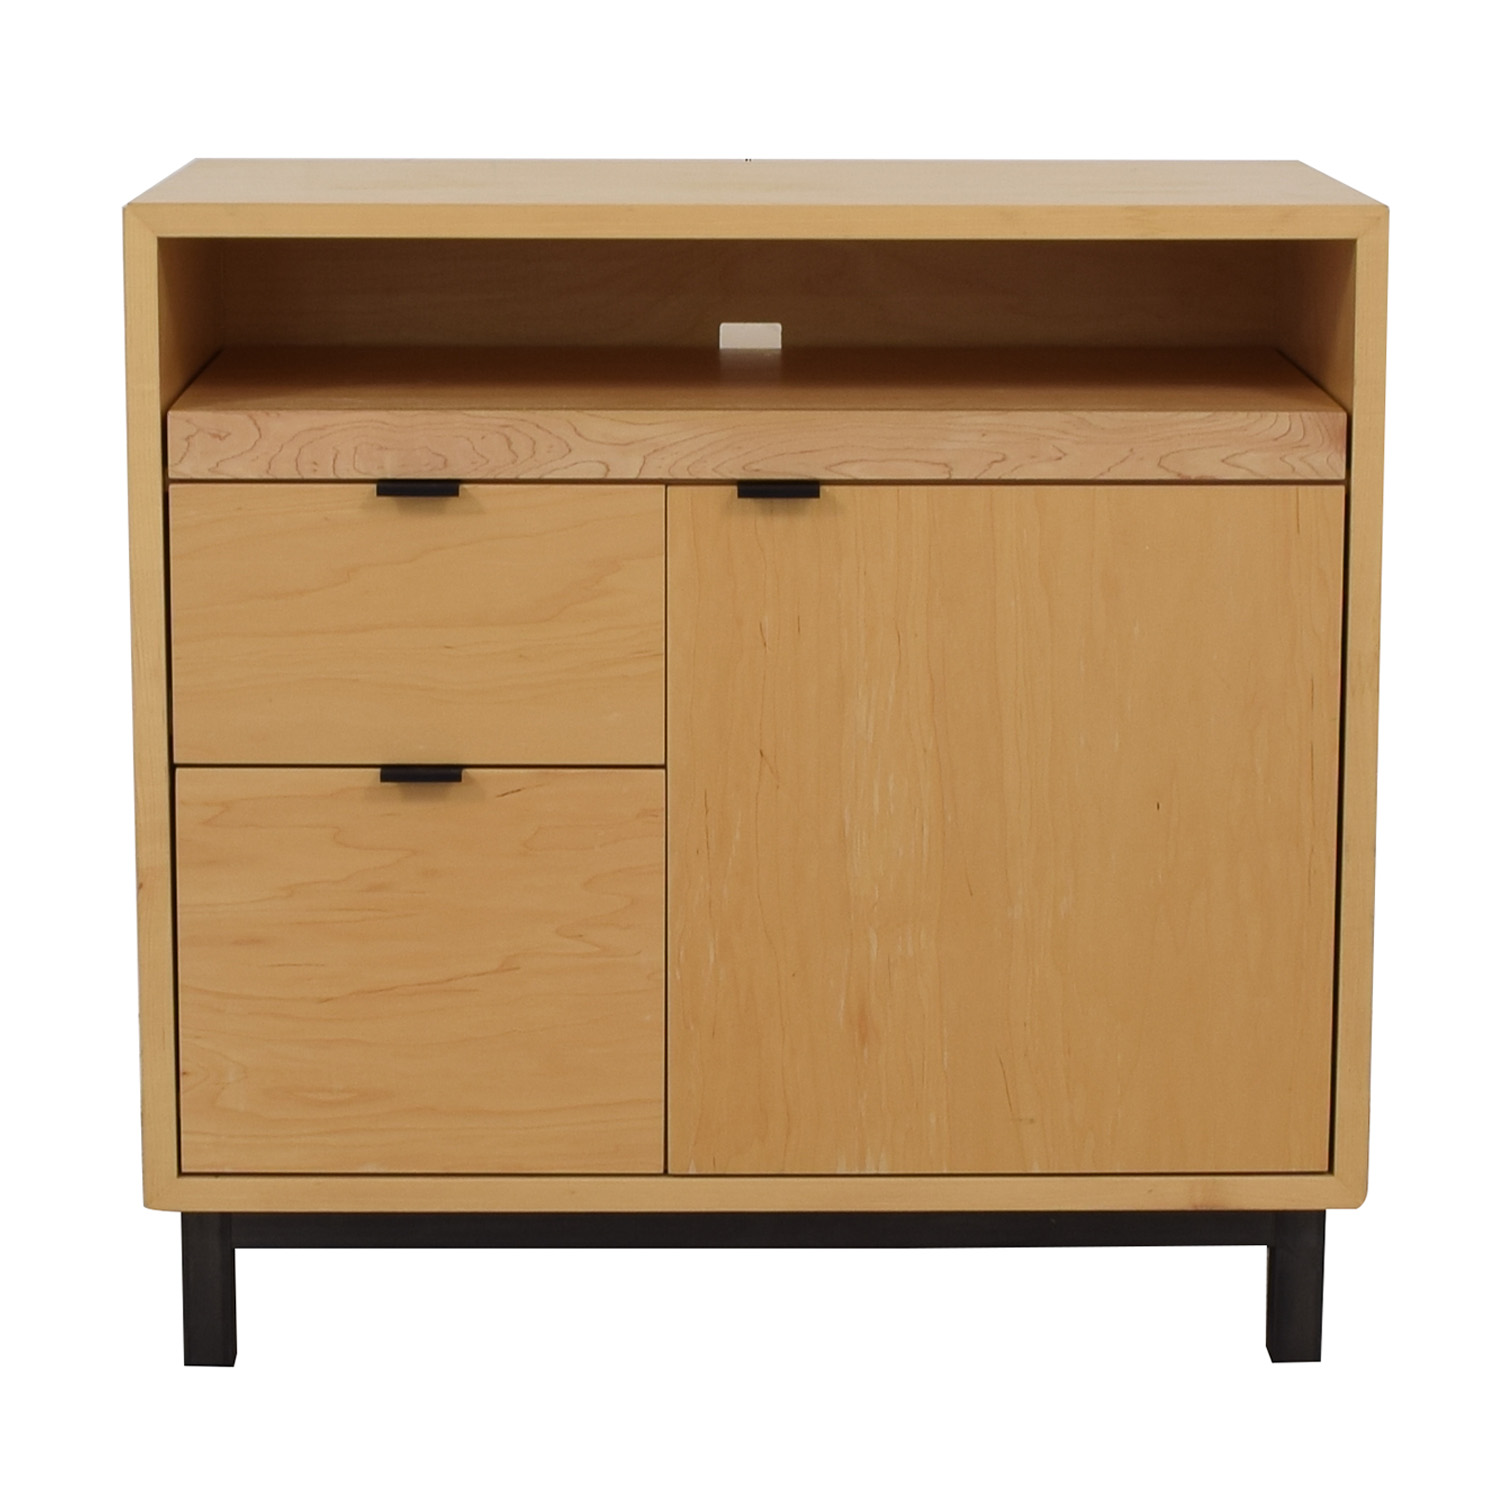 Room & Board Copenhagen Office Cabinet sale